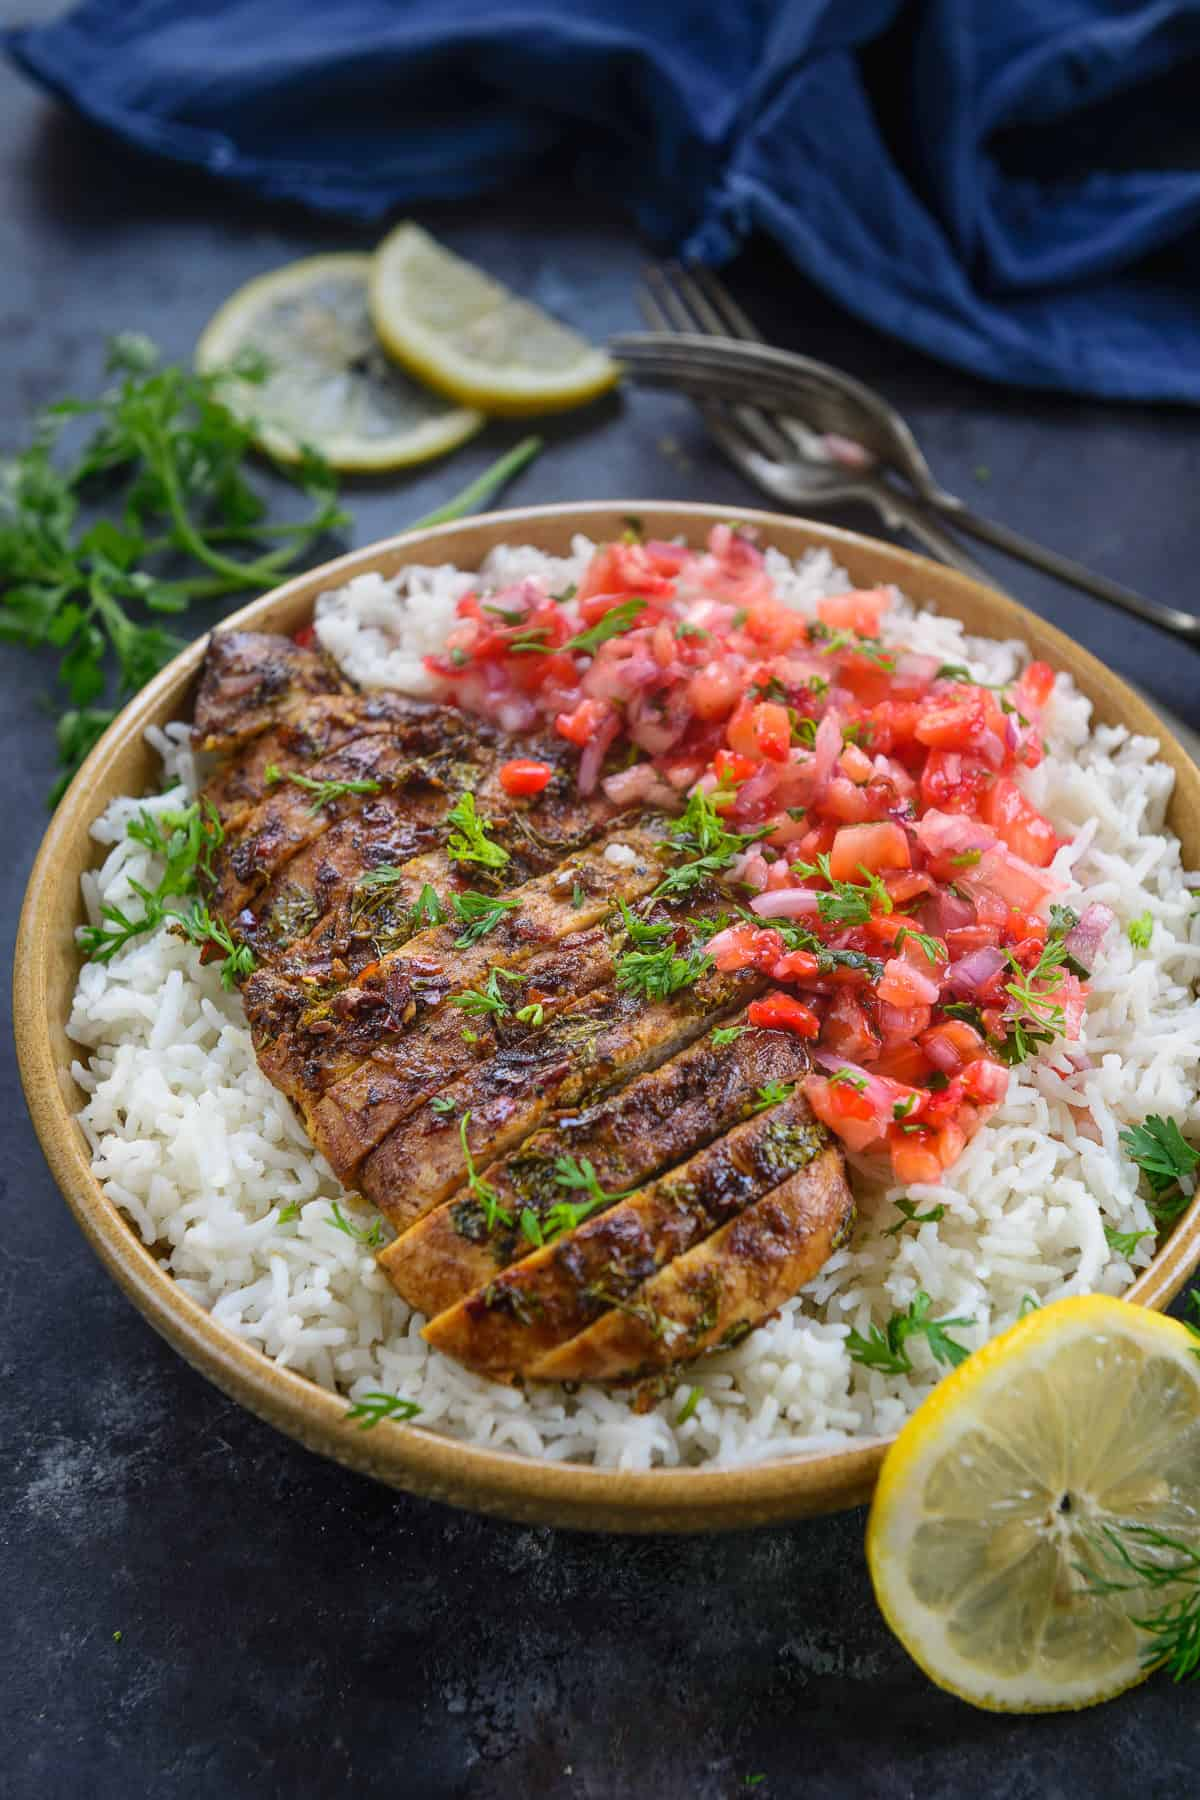 Cilantro Lime Chicken served in a plate with rice.